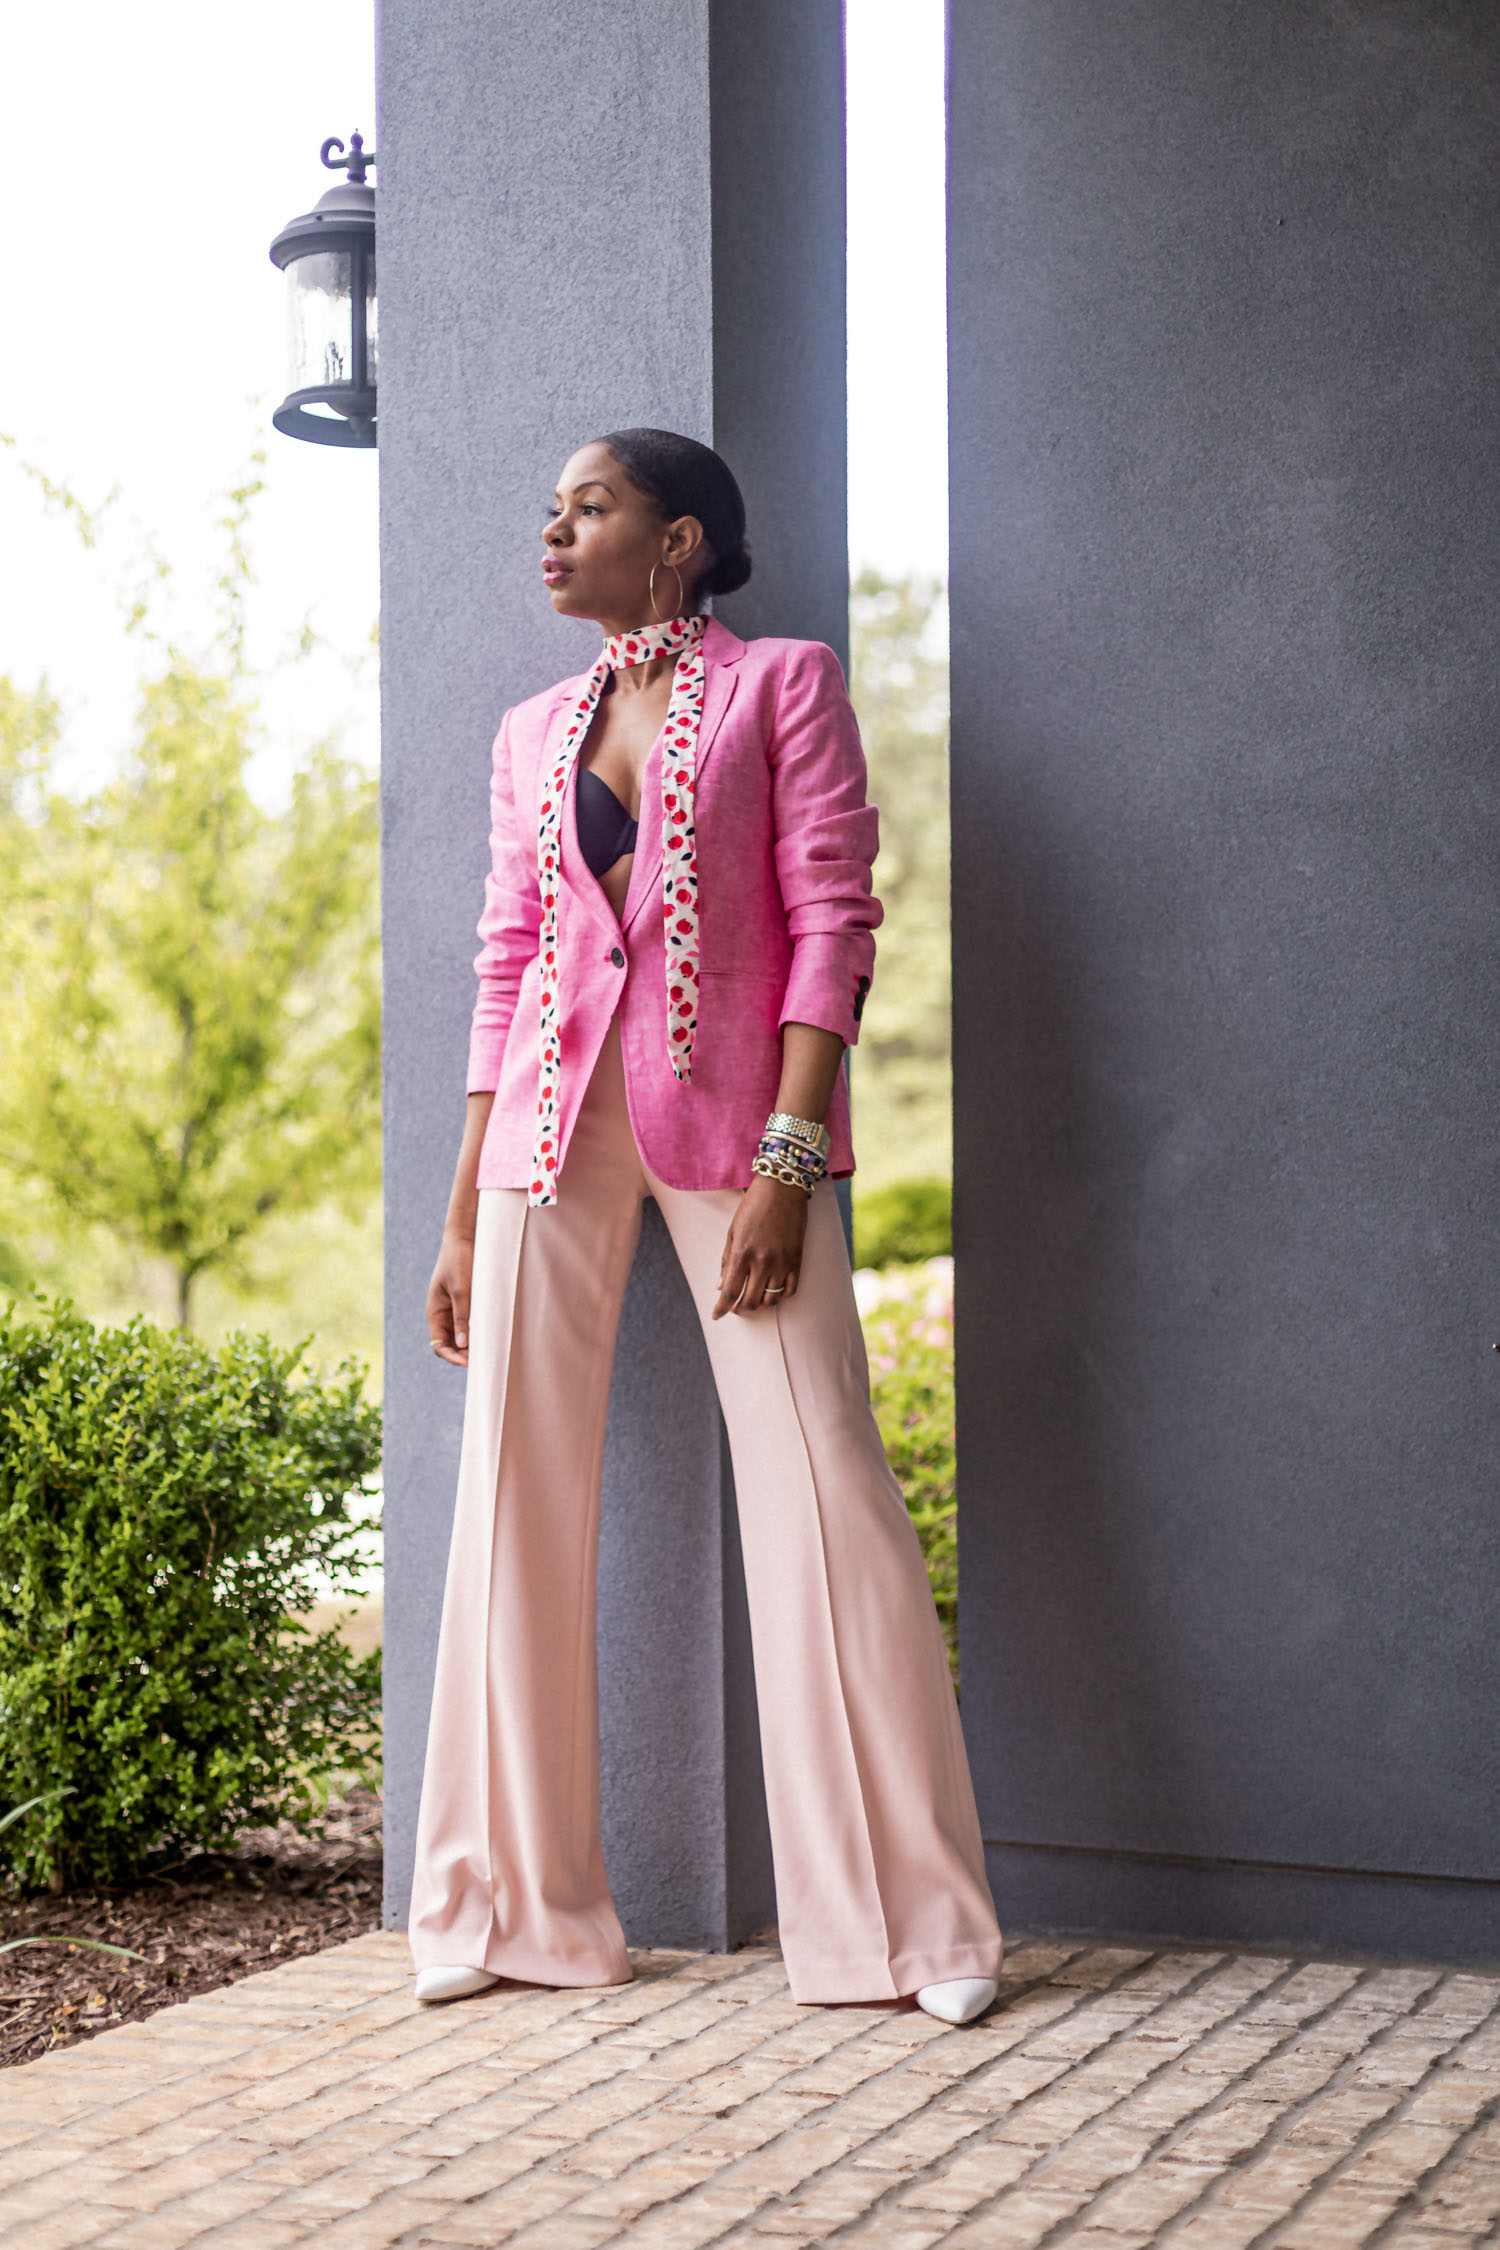 atlanta blogger shows you how to style a pink blazer for spring 2020, how to style a blazer, how to style a linen blazer, talbot blazer, talbot linen blazer, 1 blazer styled 4 ways, outfit try-on, outfit haul, how to style a linen blazer, how to style a pink linen blazer